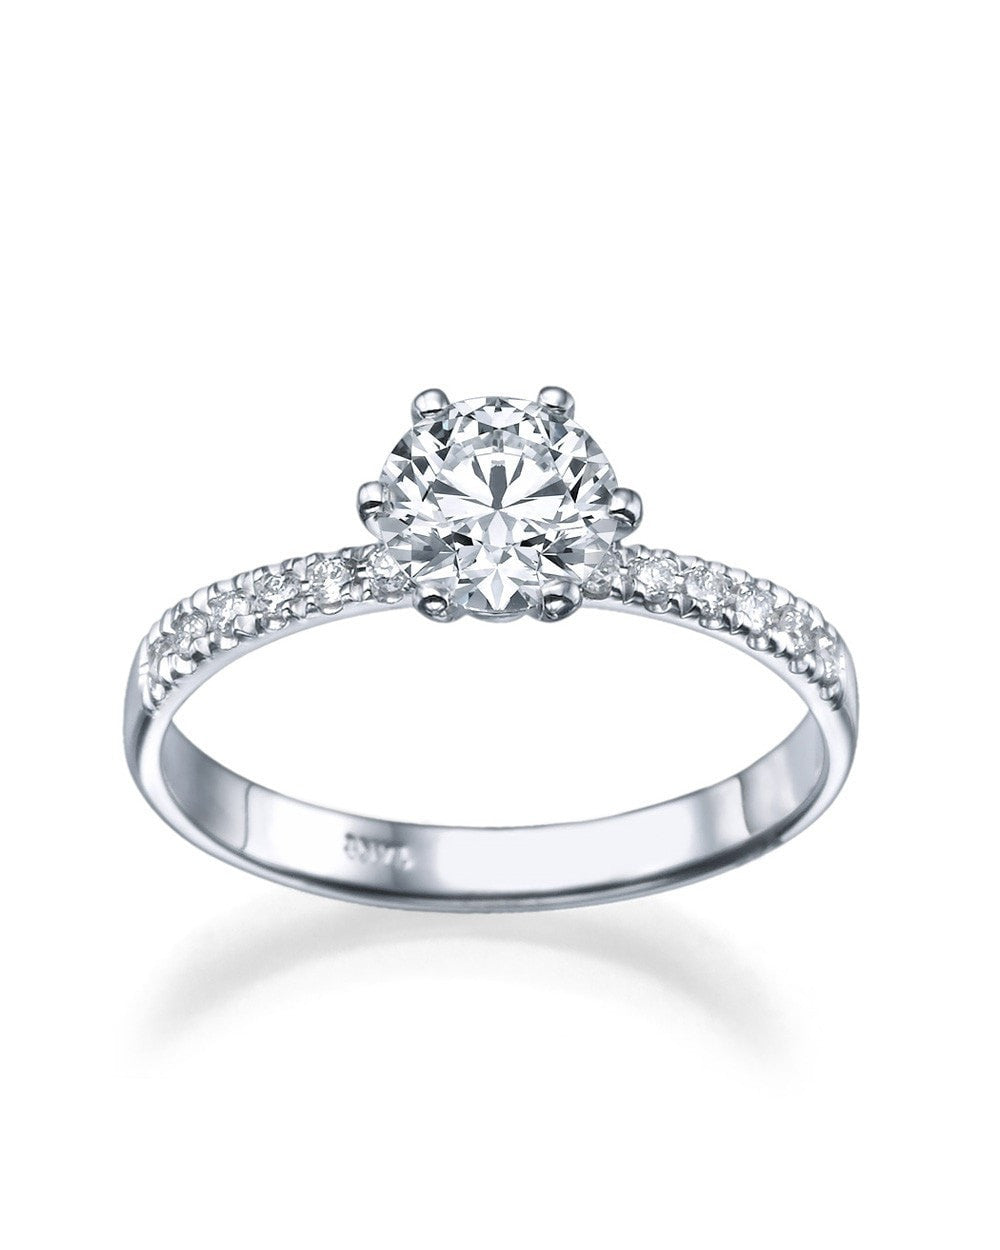 rings image rose white products product created gold engagement ring diamond cttw moissanite round jewellery